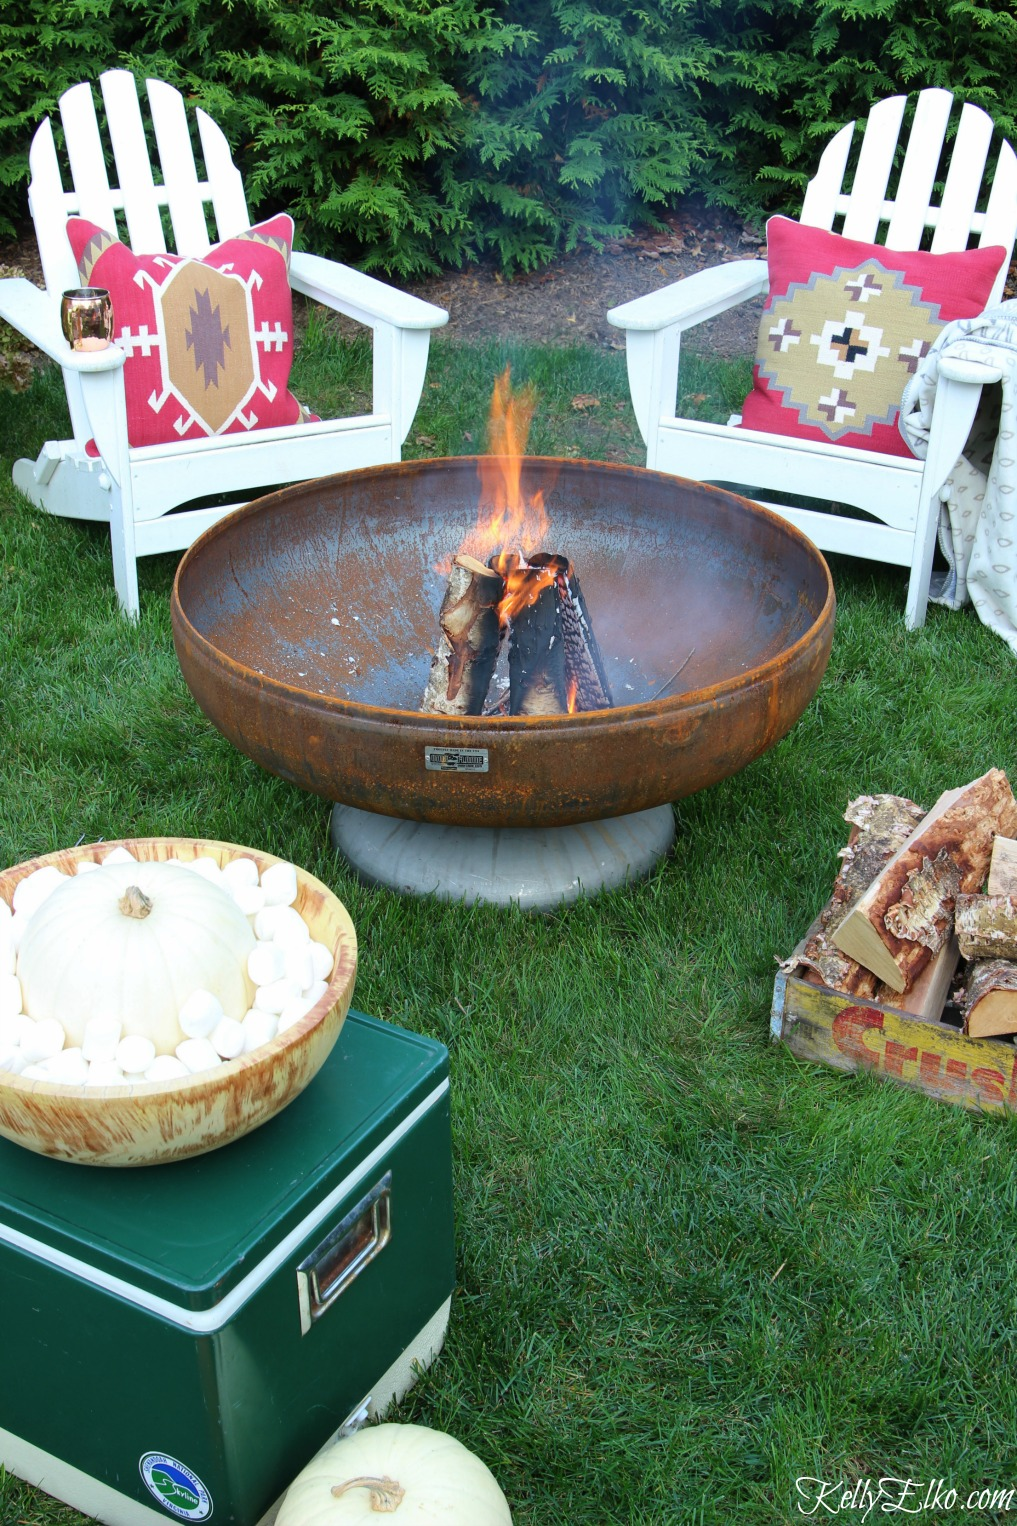 Cozy fall fire pit - I love the red boho pillows and vintage finds like the old cooler and soda crate holding kindling kellyelko.com